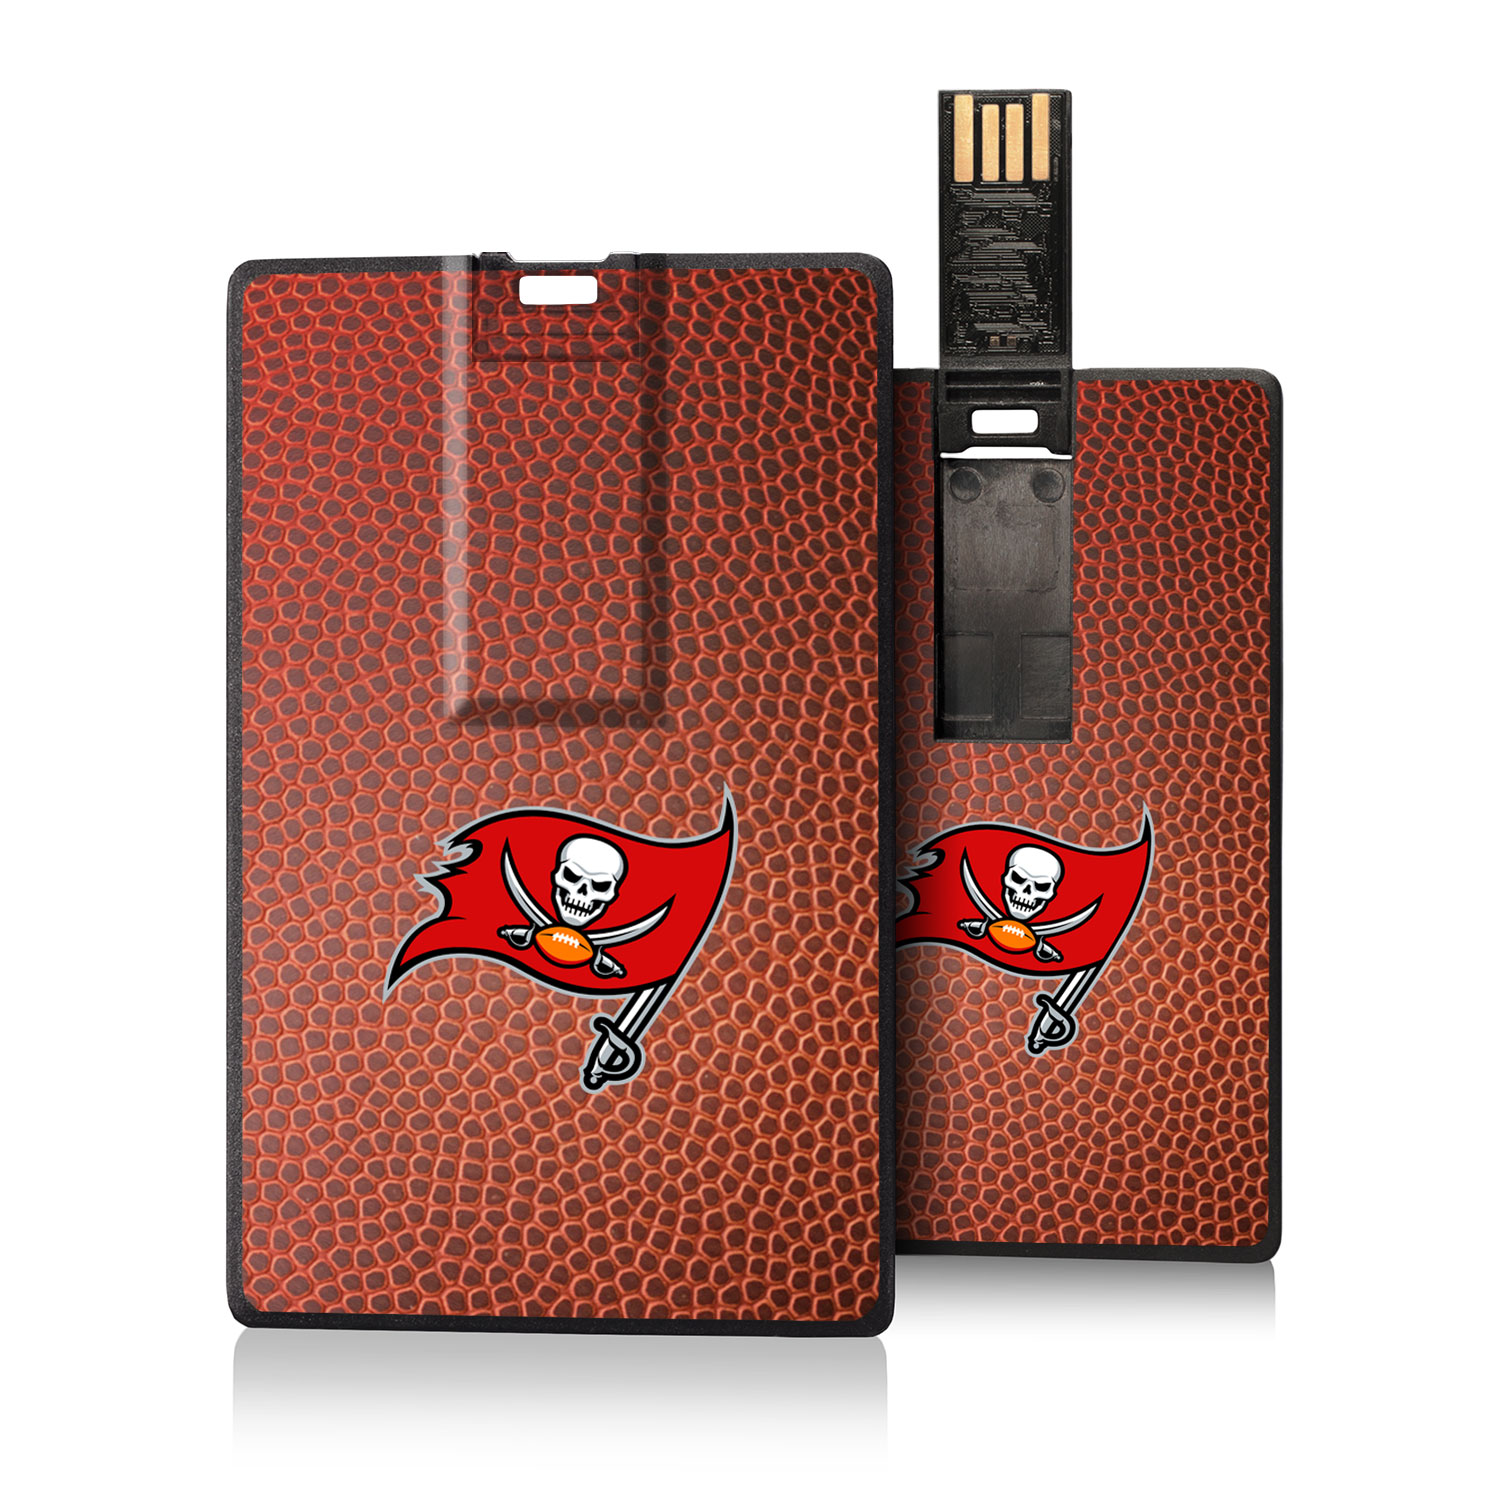 Tampa Bay Buccaneers Football Design Credit Card USB Drive